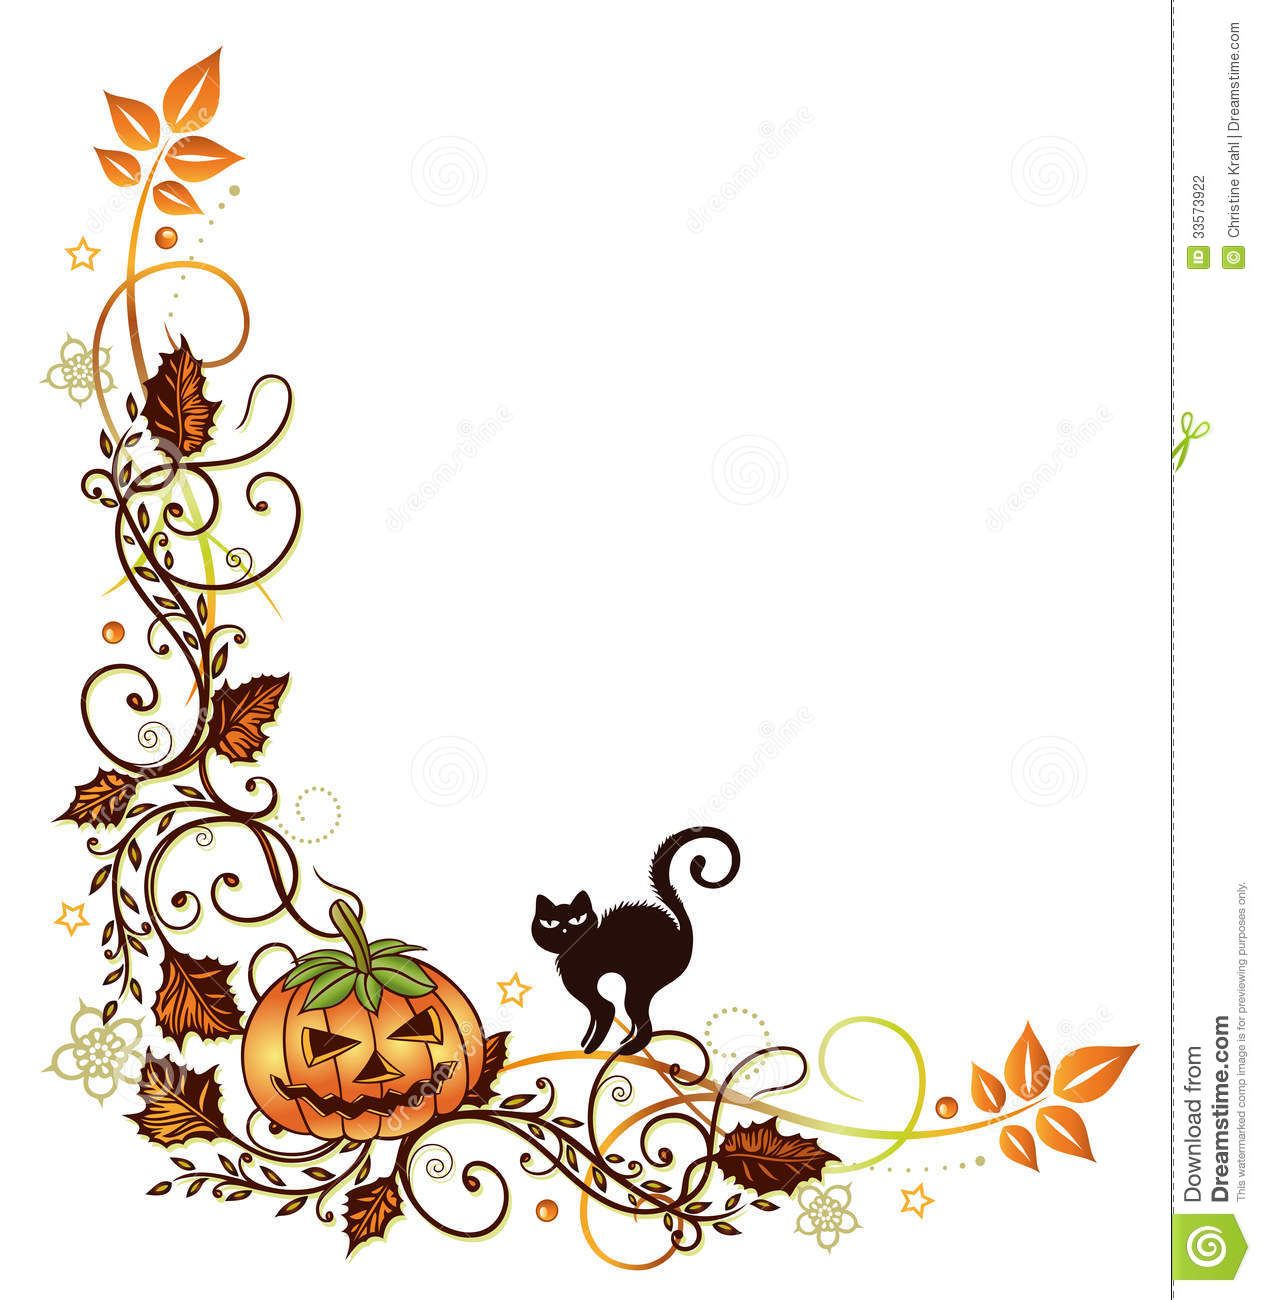 halloween border clipart free large images halloween pinterest rh pinterest co uk  halloween borders clip art free download